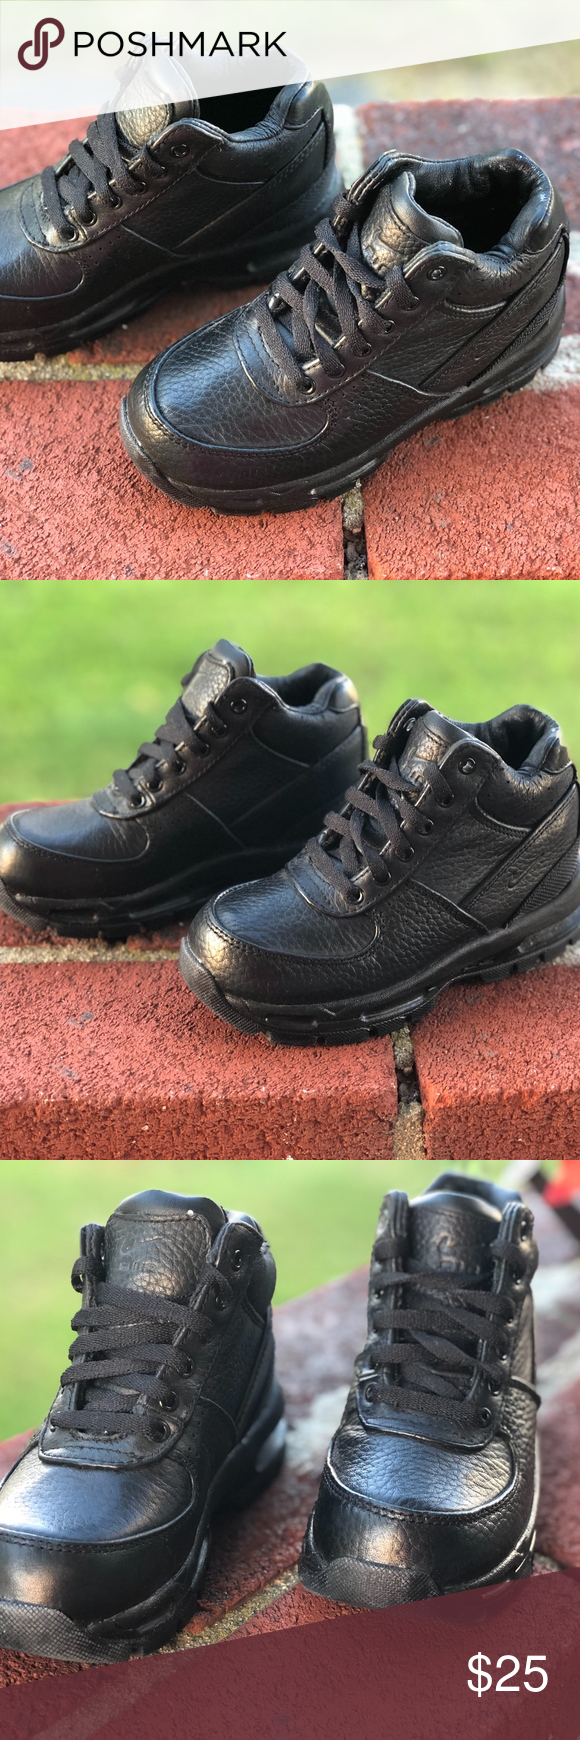 wholesale dealer 83146 42957 Nike Air Max Goadome Boot Shoes Toddler Boys 10c B Like brand new! All  black waterproof leather Nike boots for kids. Worn a few times. Nike Shoes  Boots